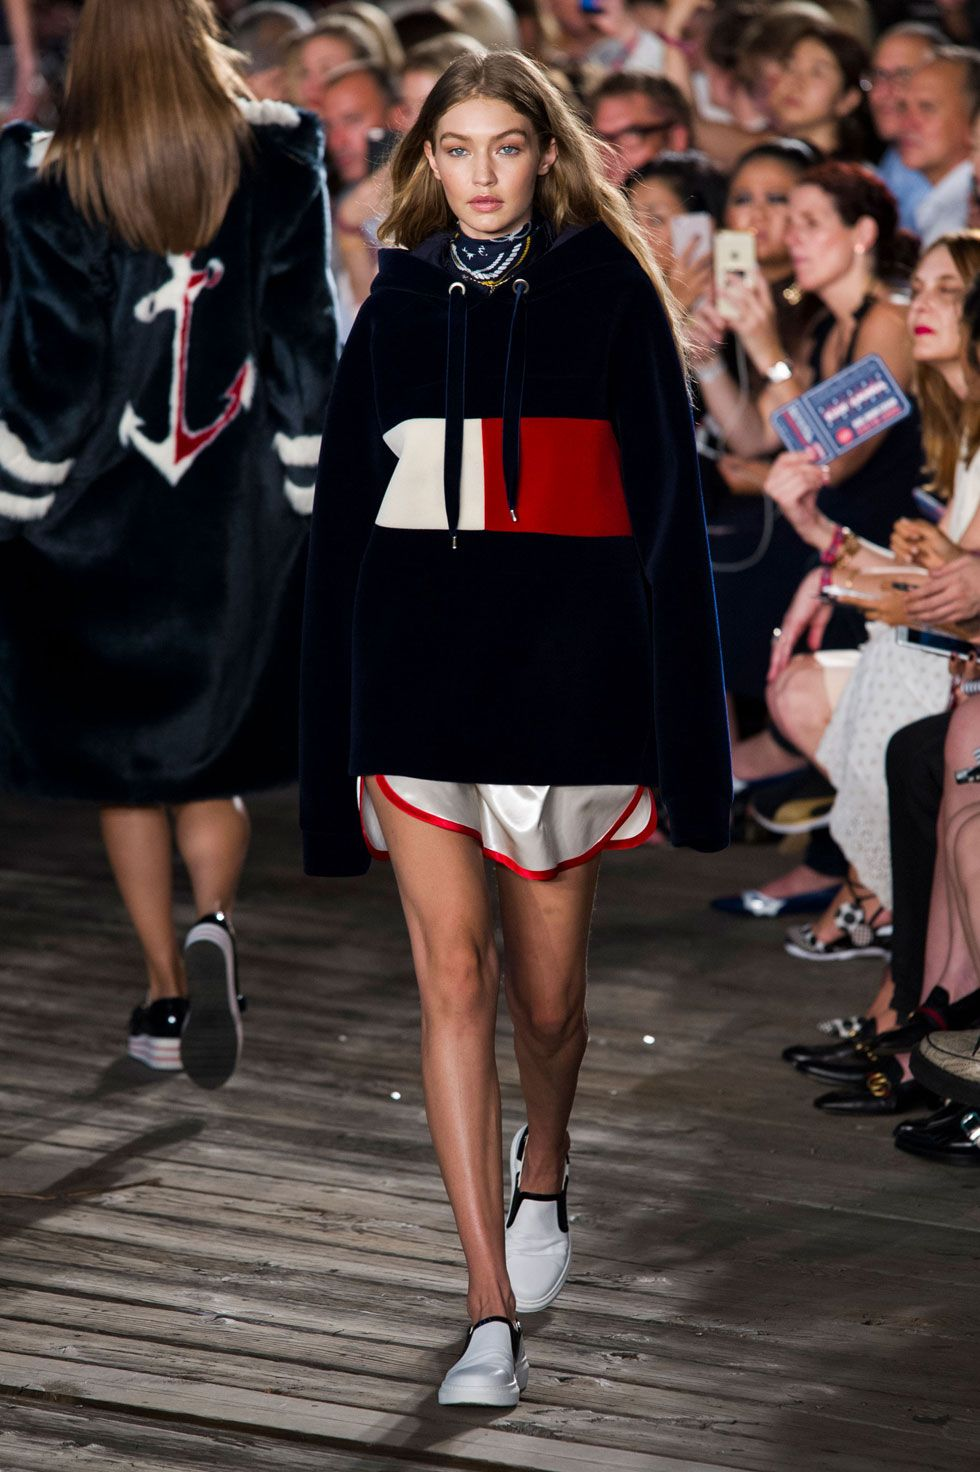 Discussion on this topic: Chloe, gigi-hadid-usa-3-2015-016-2018/